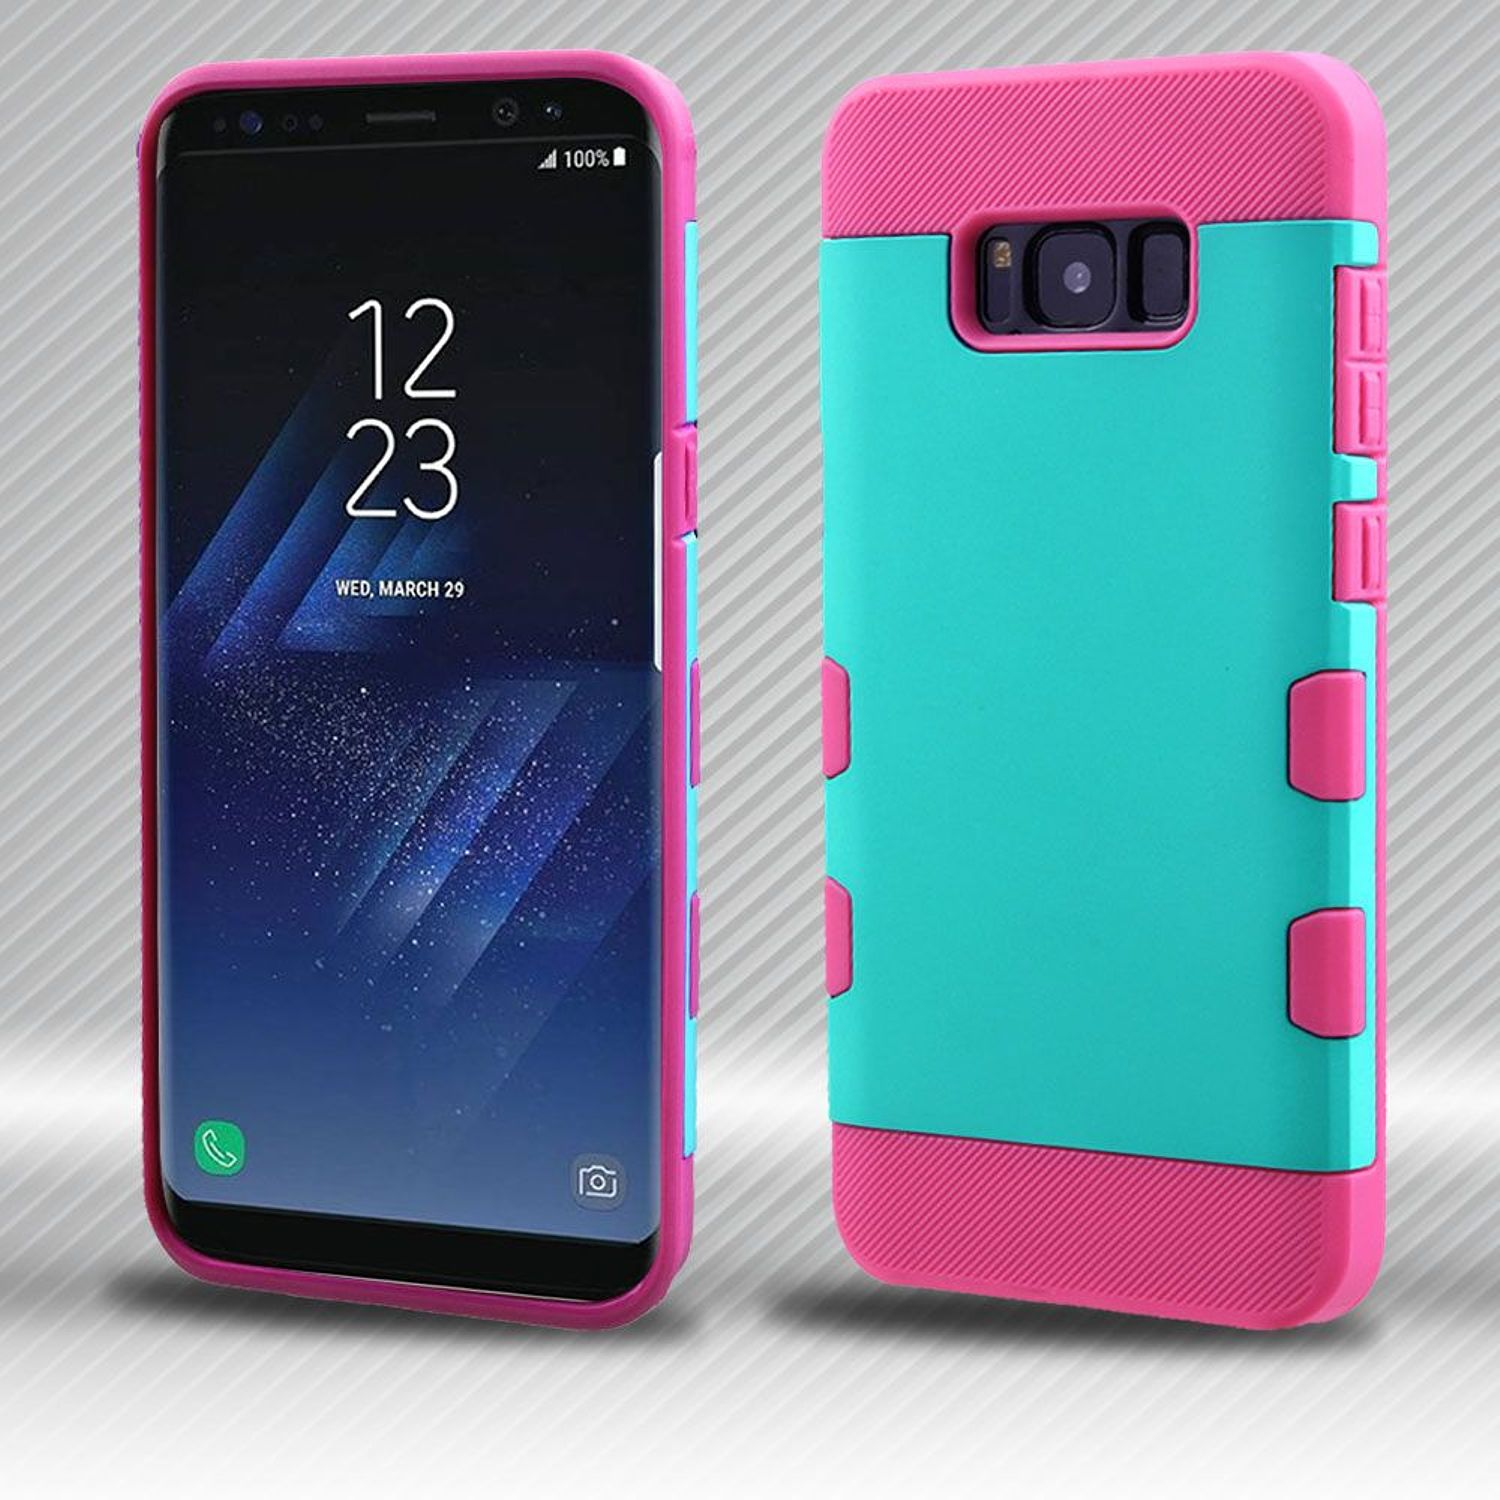 Insten Tuff Dual Layer [Shock Absorbing] Hybrid Hard Plastic/Soft TPU Rubber Case Phone Cover For Samsung Galaxy S8 Plus S8+, Teal/Hot Pink